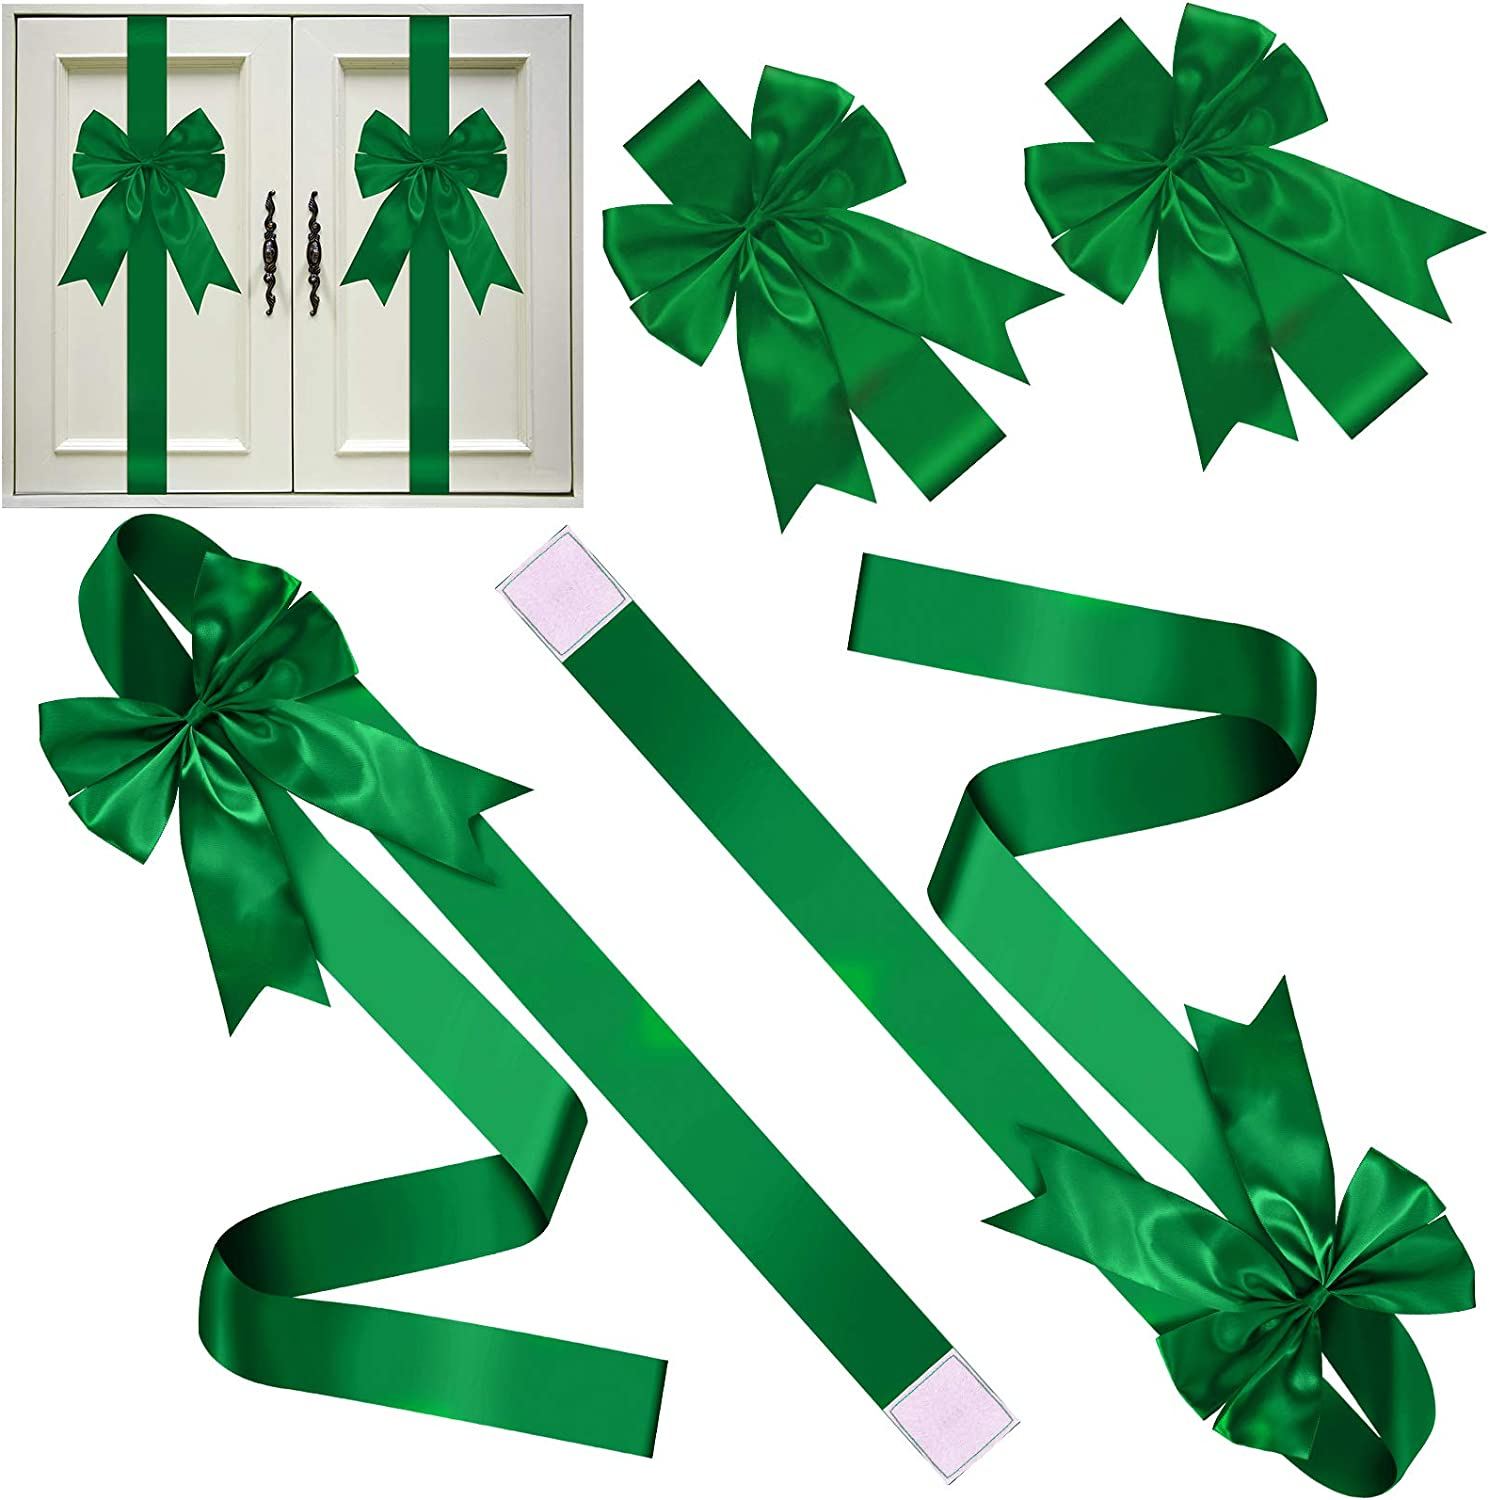 6 Pieces Christmas Cabinet Festive Ribbons Christmas Door Ribbon and Bows for Christmas Party Decorations (Green)